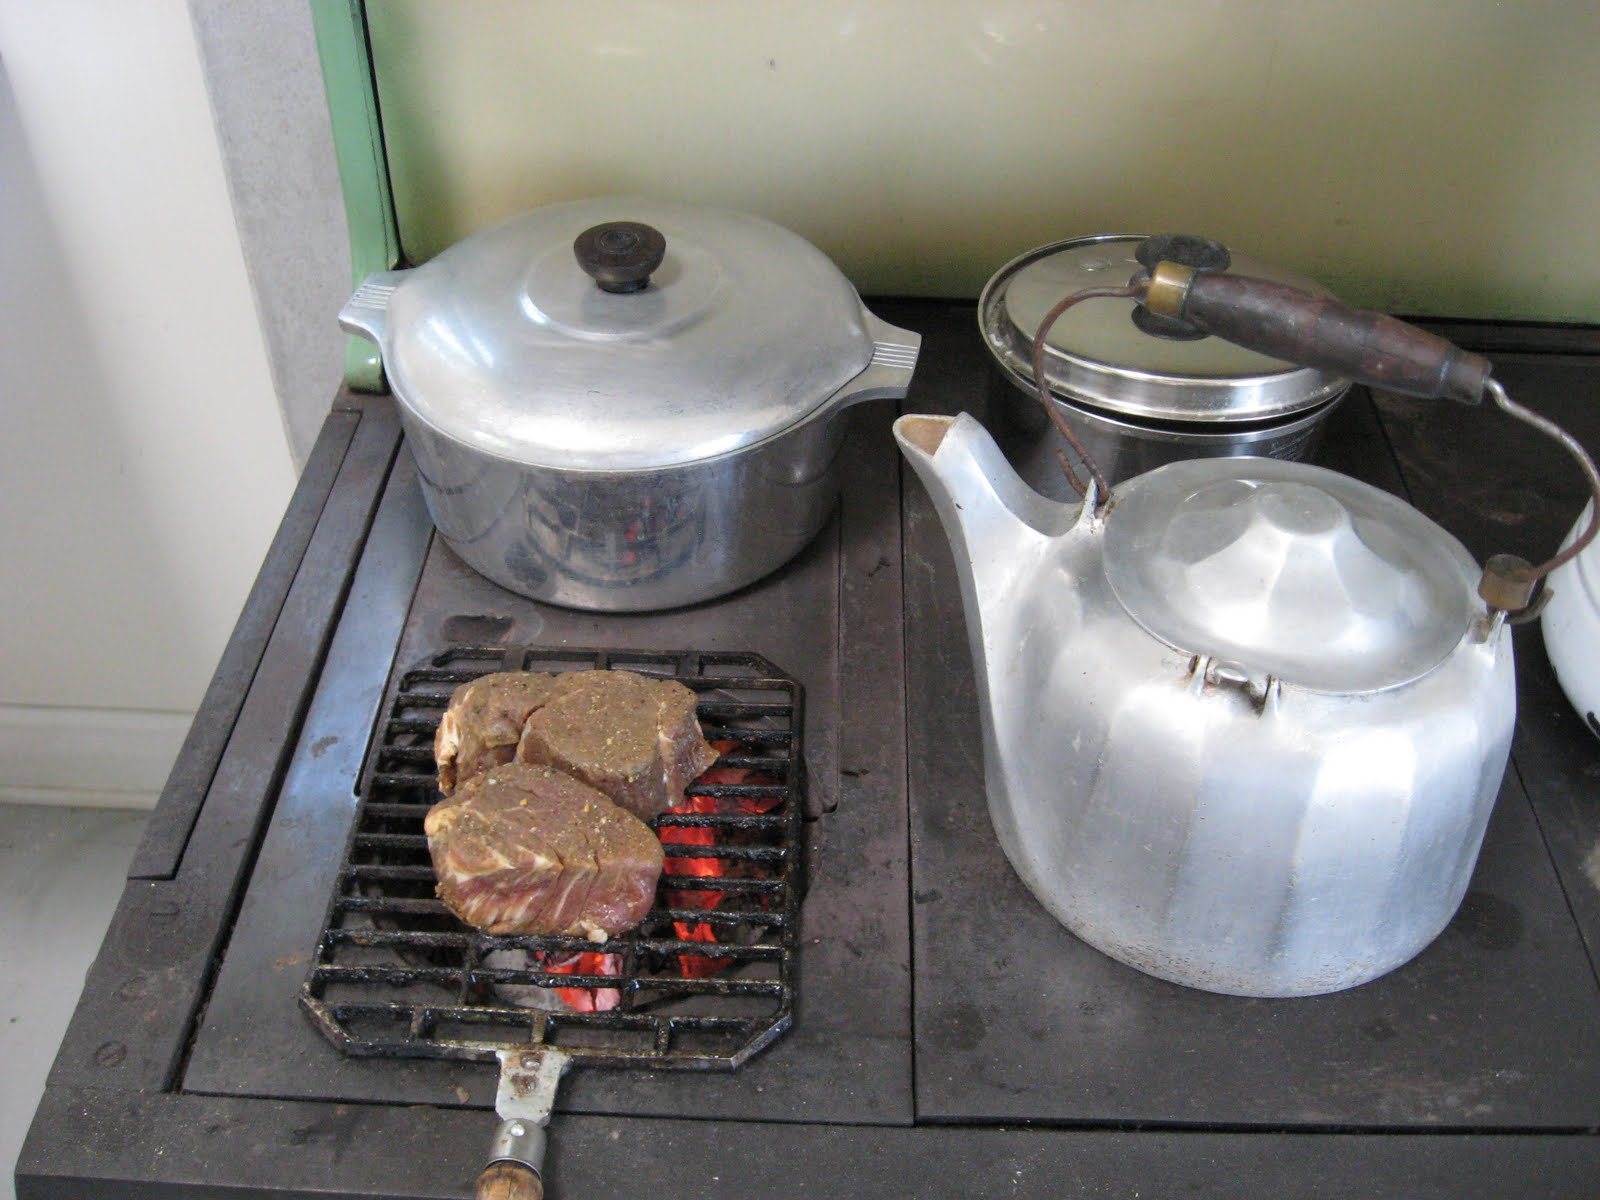 Wood Cookstove Cooking: Grilling on the Wood Cookstove